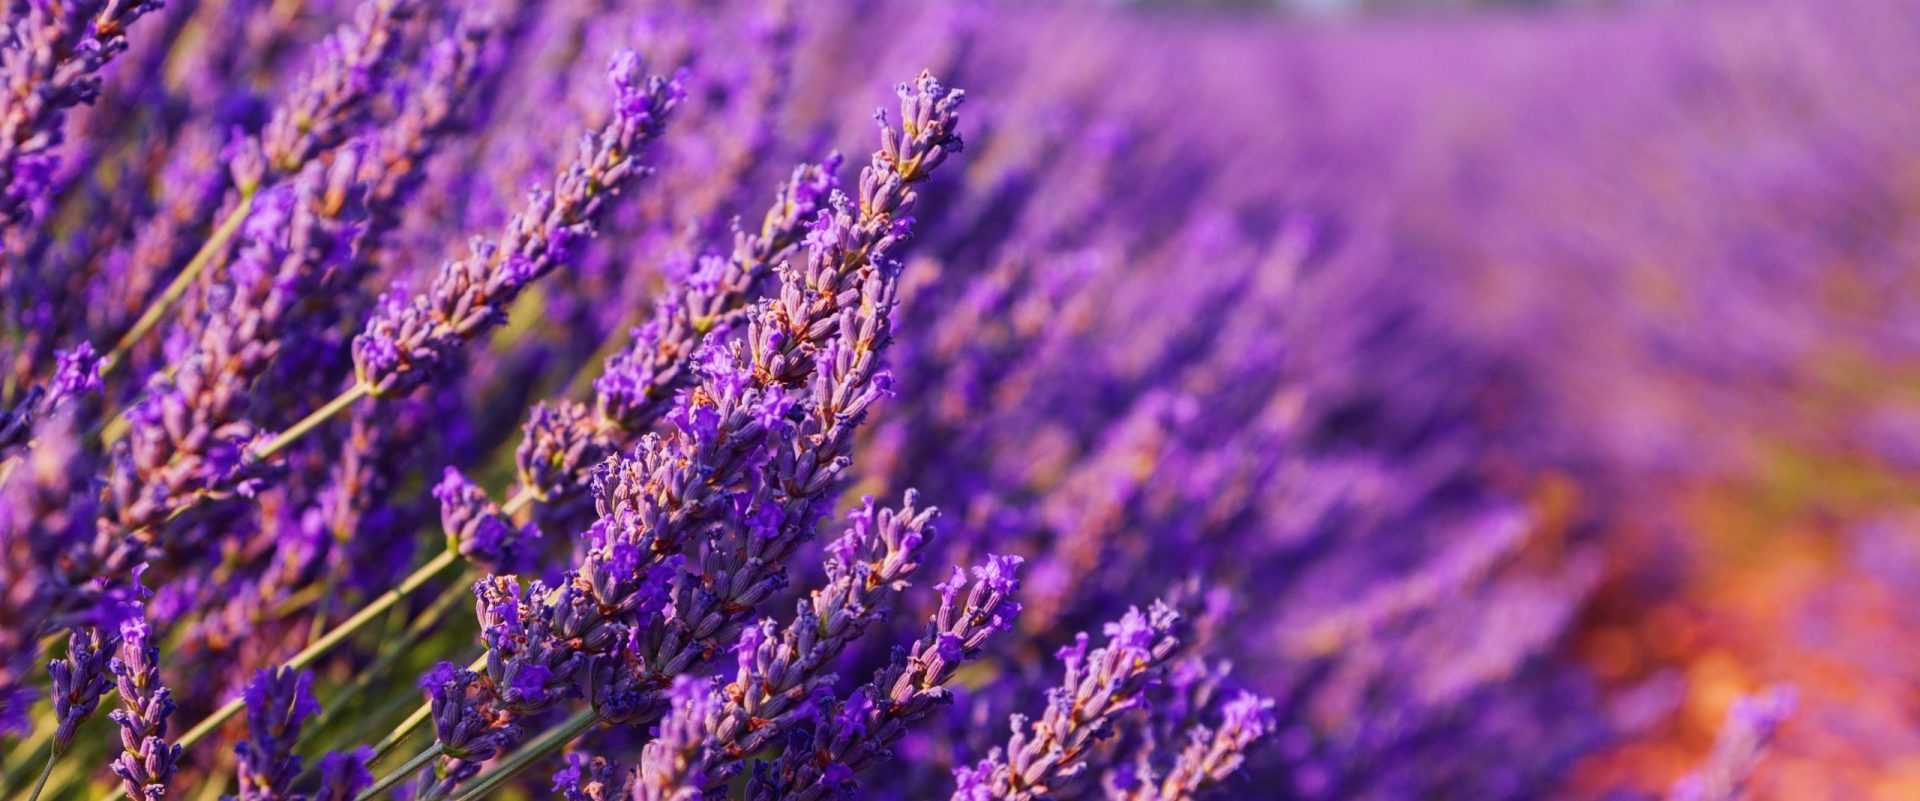 Flower Essences Added to Other Treatments: Combining Healing Methods and Modalities Brings Out the Best Results